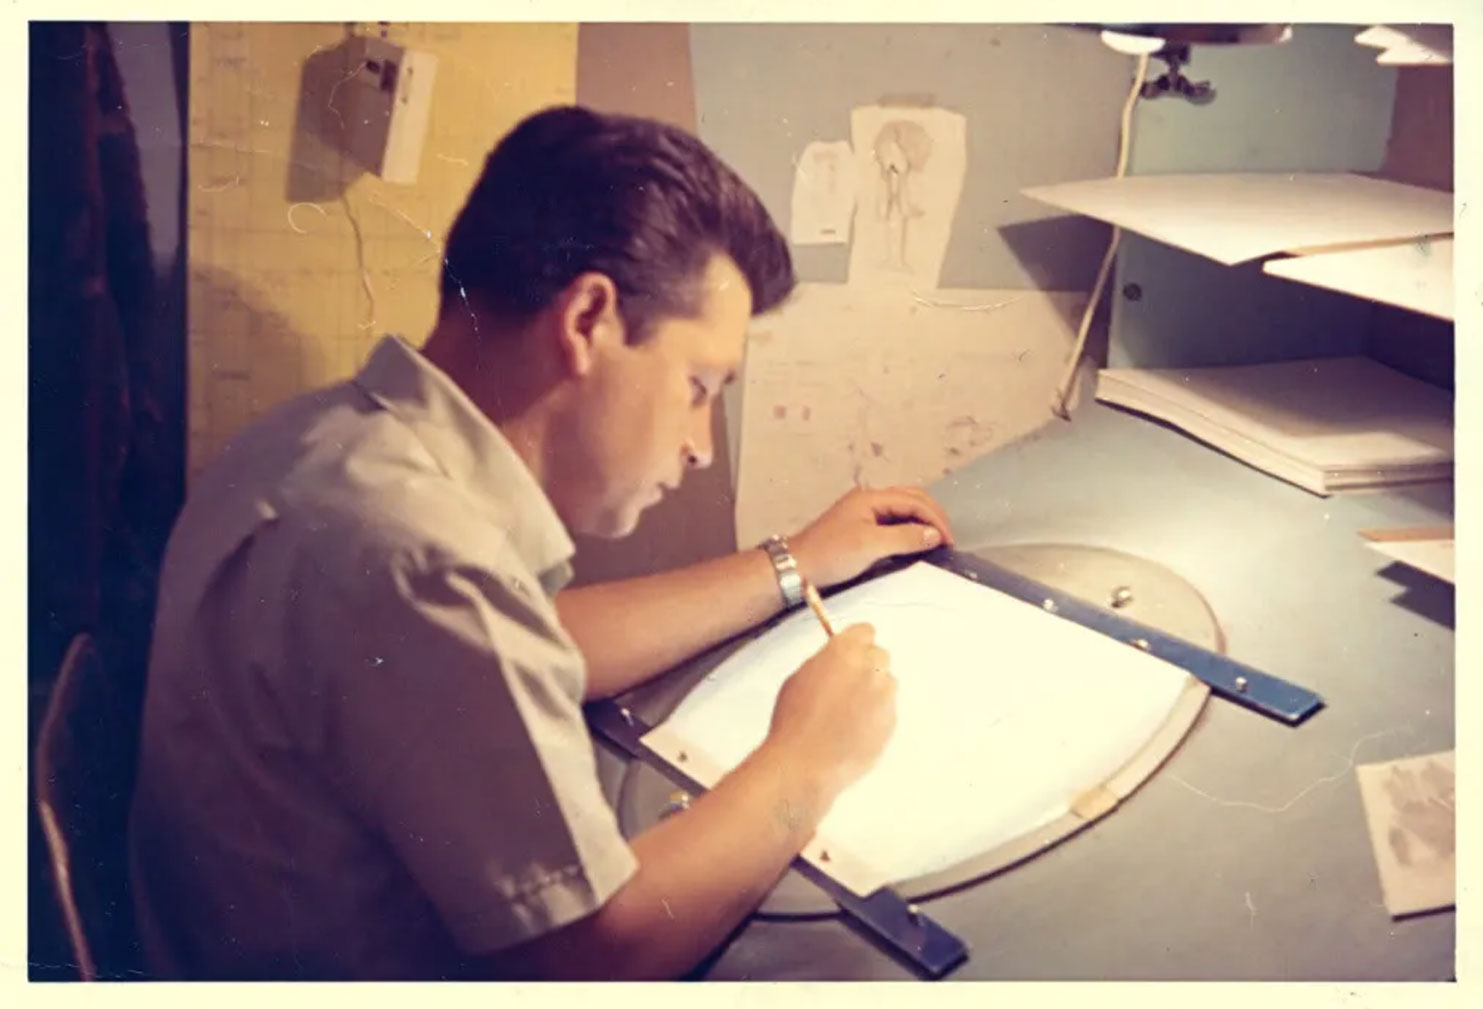 Roman Arambula working at Gamma Productions in Mexico in the 1960s.